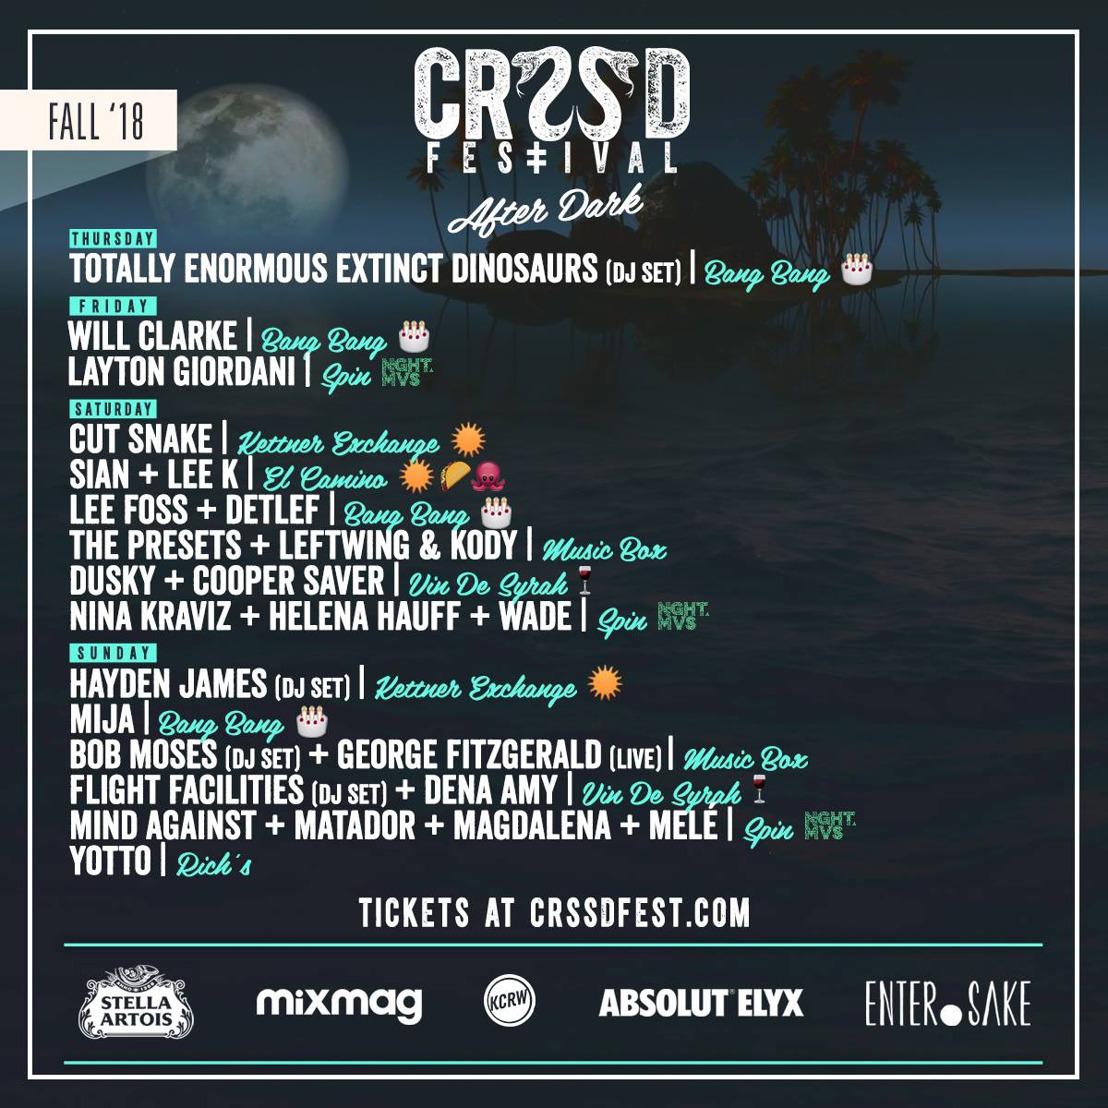 CRSSD Festival Announces By Day & After Dark Programming for Fall 2018